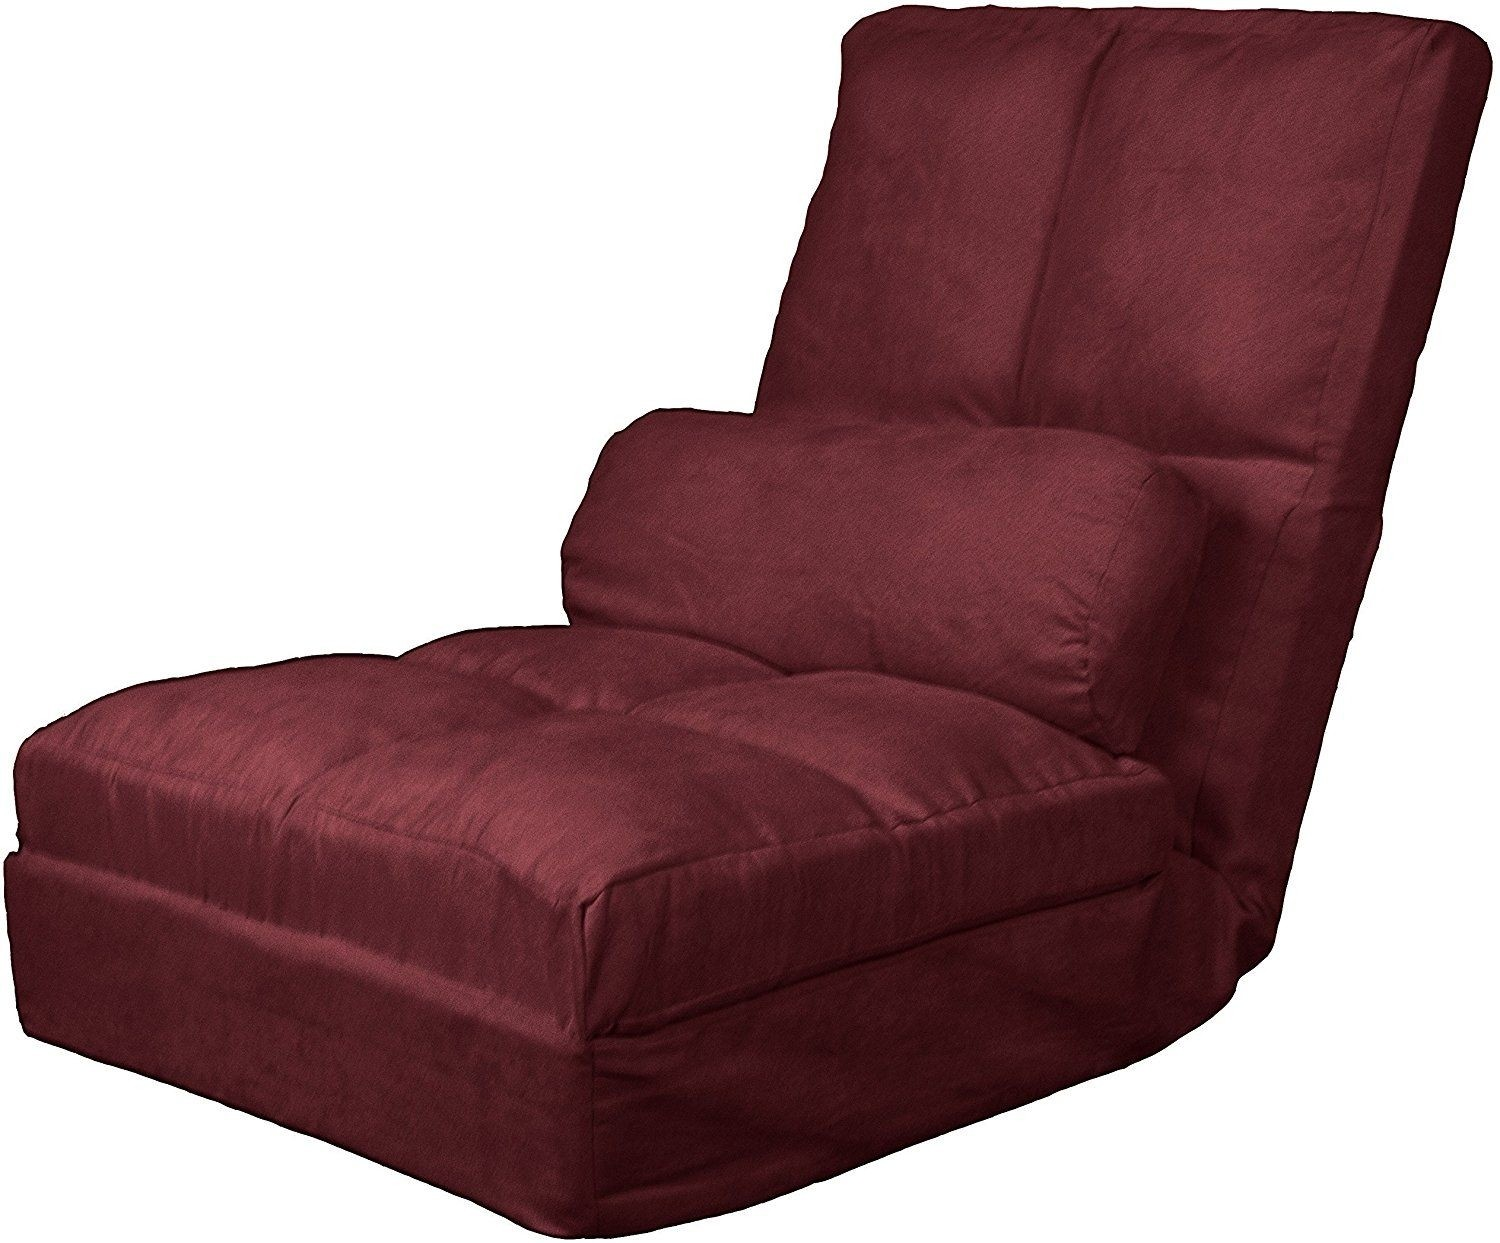 epic furnishings cosmo click clack convertible futon pillow top flip chair sleeper bed olive futon chairs   foter  rh   foter